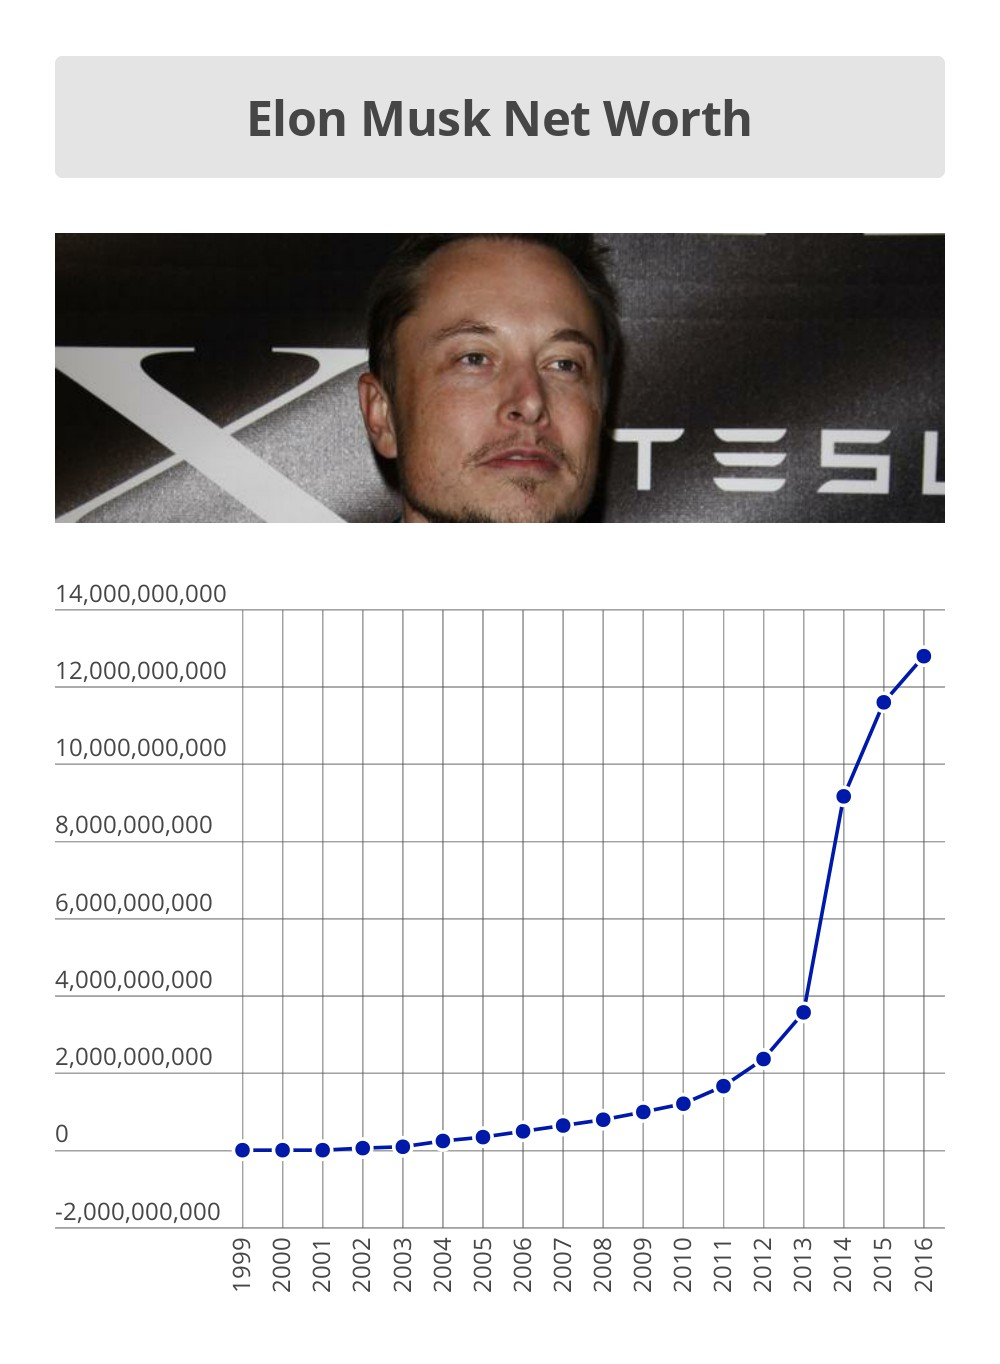 Elon musk net worth timeline also drops billion money nation rh moneynation